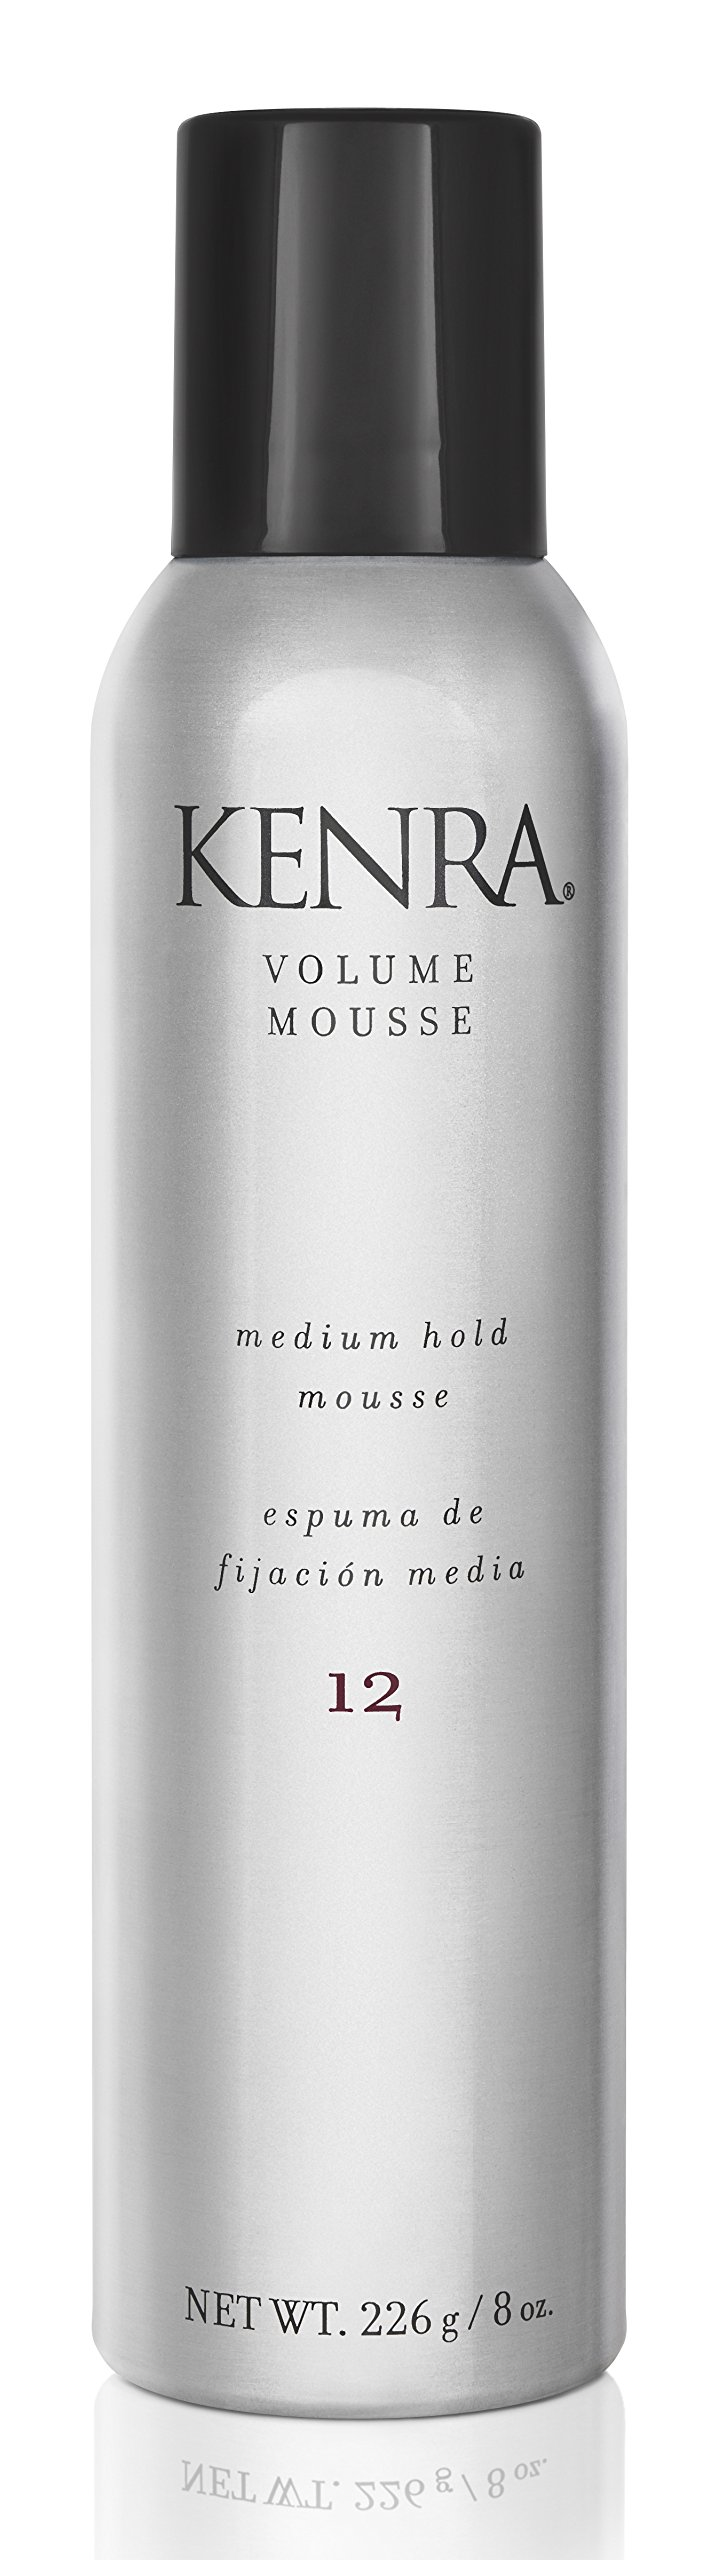 Kenra Volume Mousse #12, 8-Ounce by Kenra